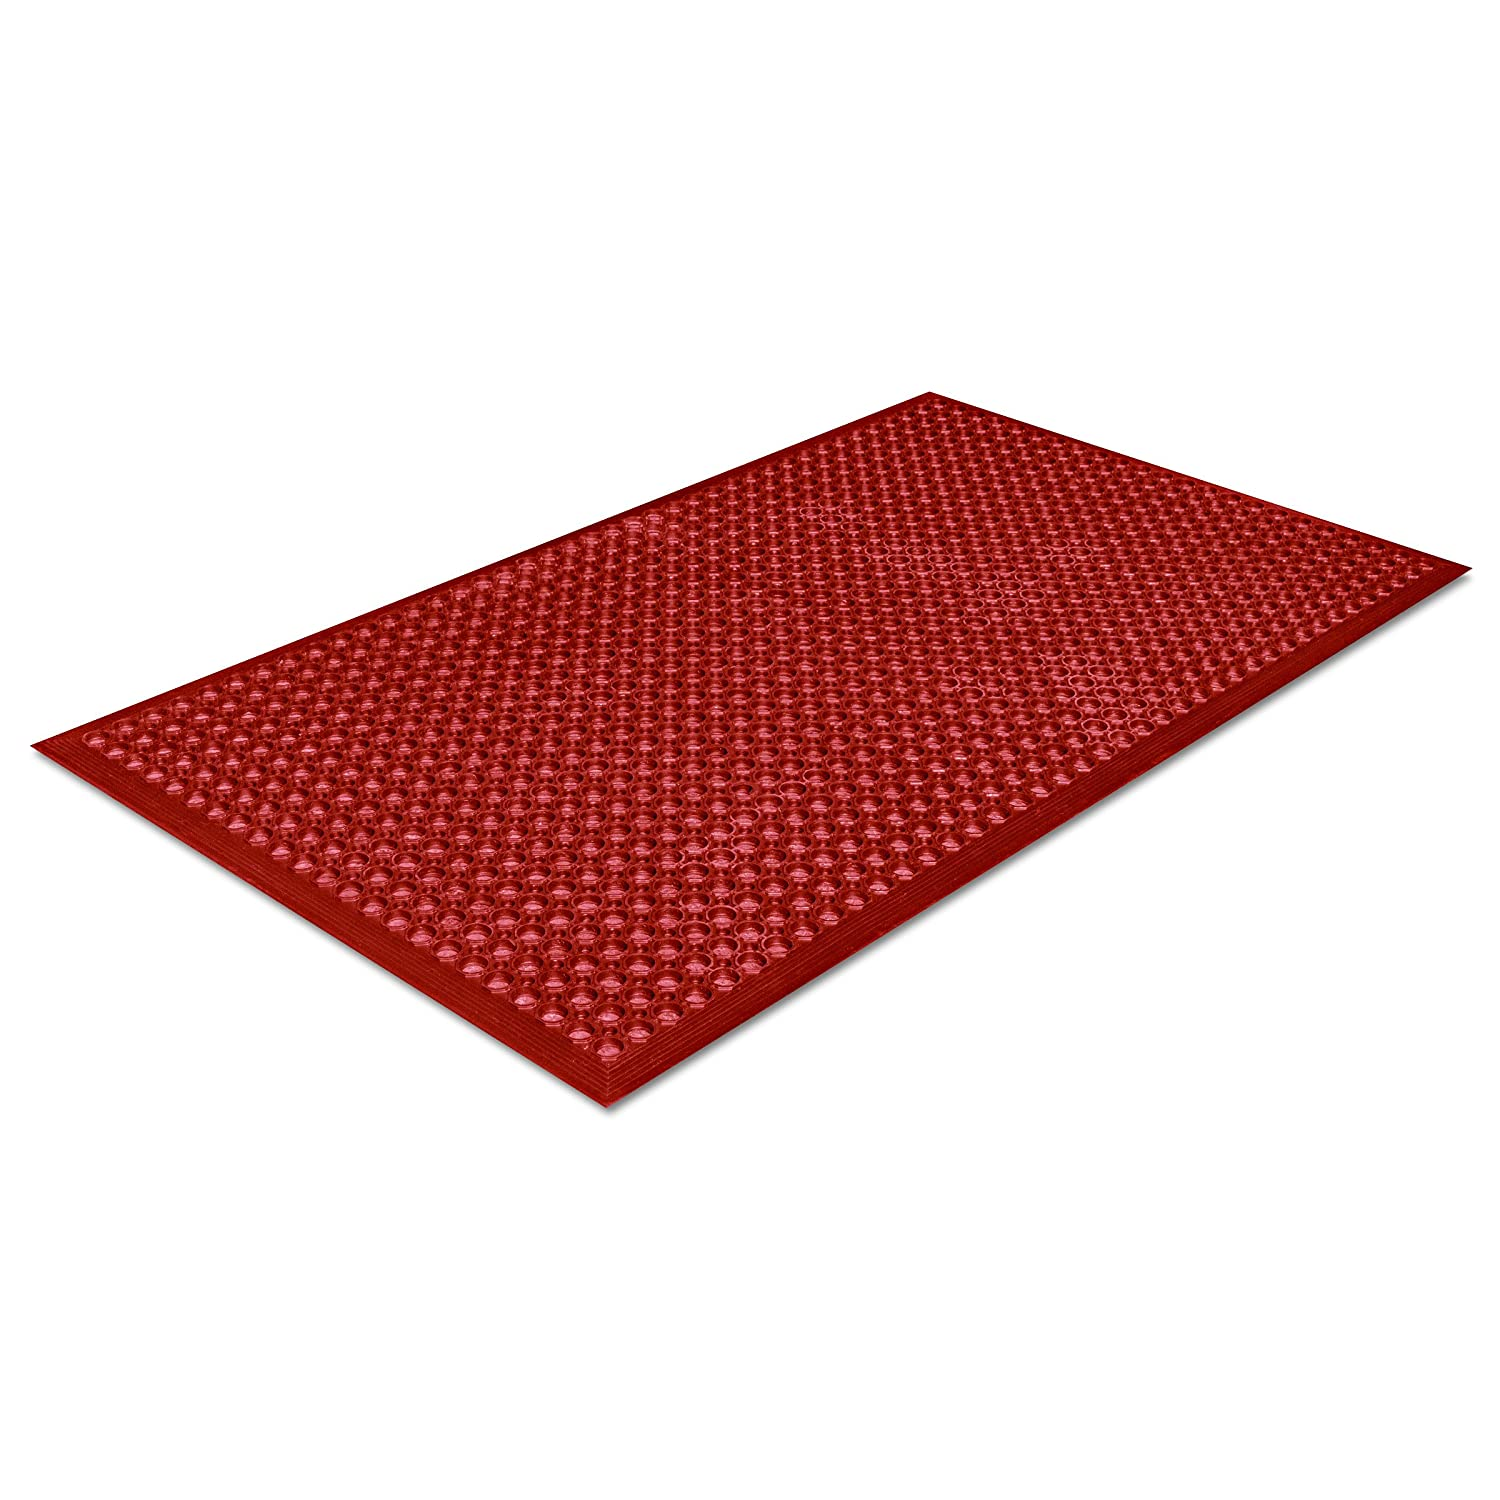 Crown Safewalk-Light Heavy-Duty Antifatigue Mat, Rubber, 36 x 60, Terra Cotta WSCT35TC